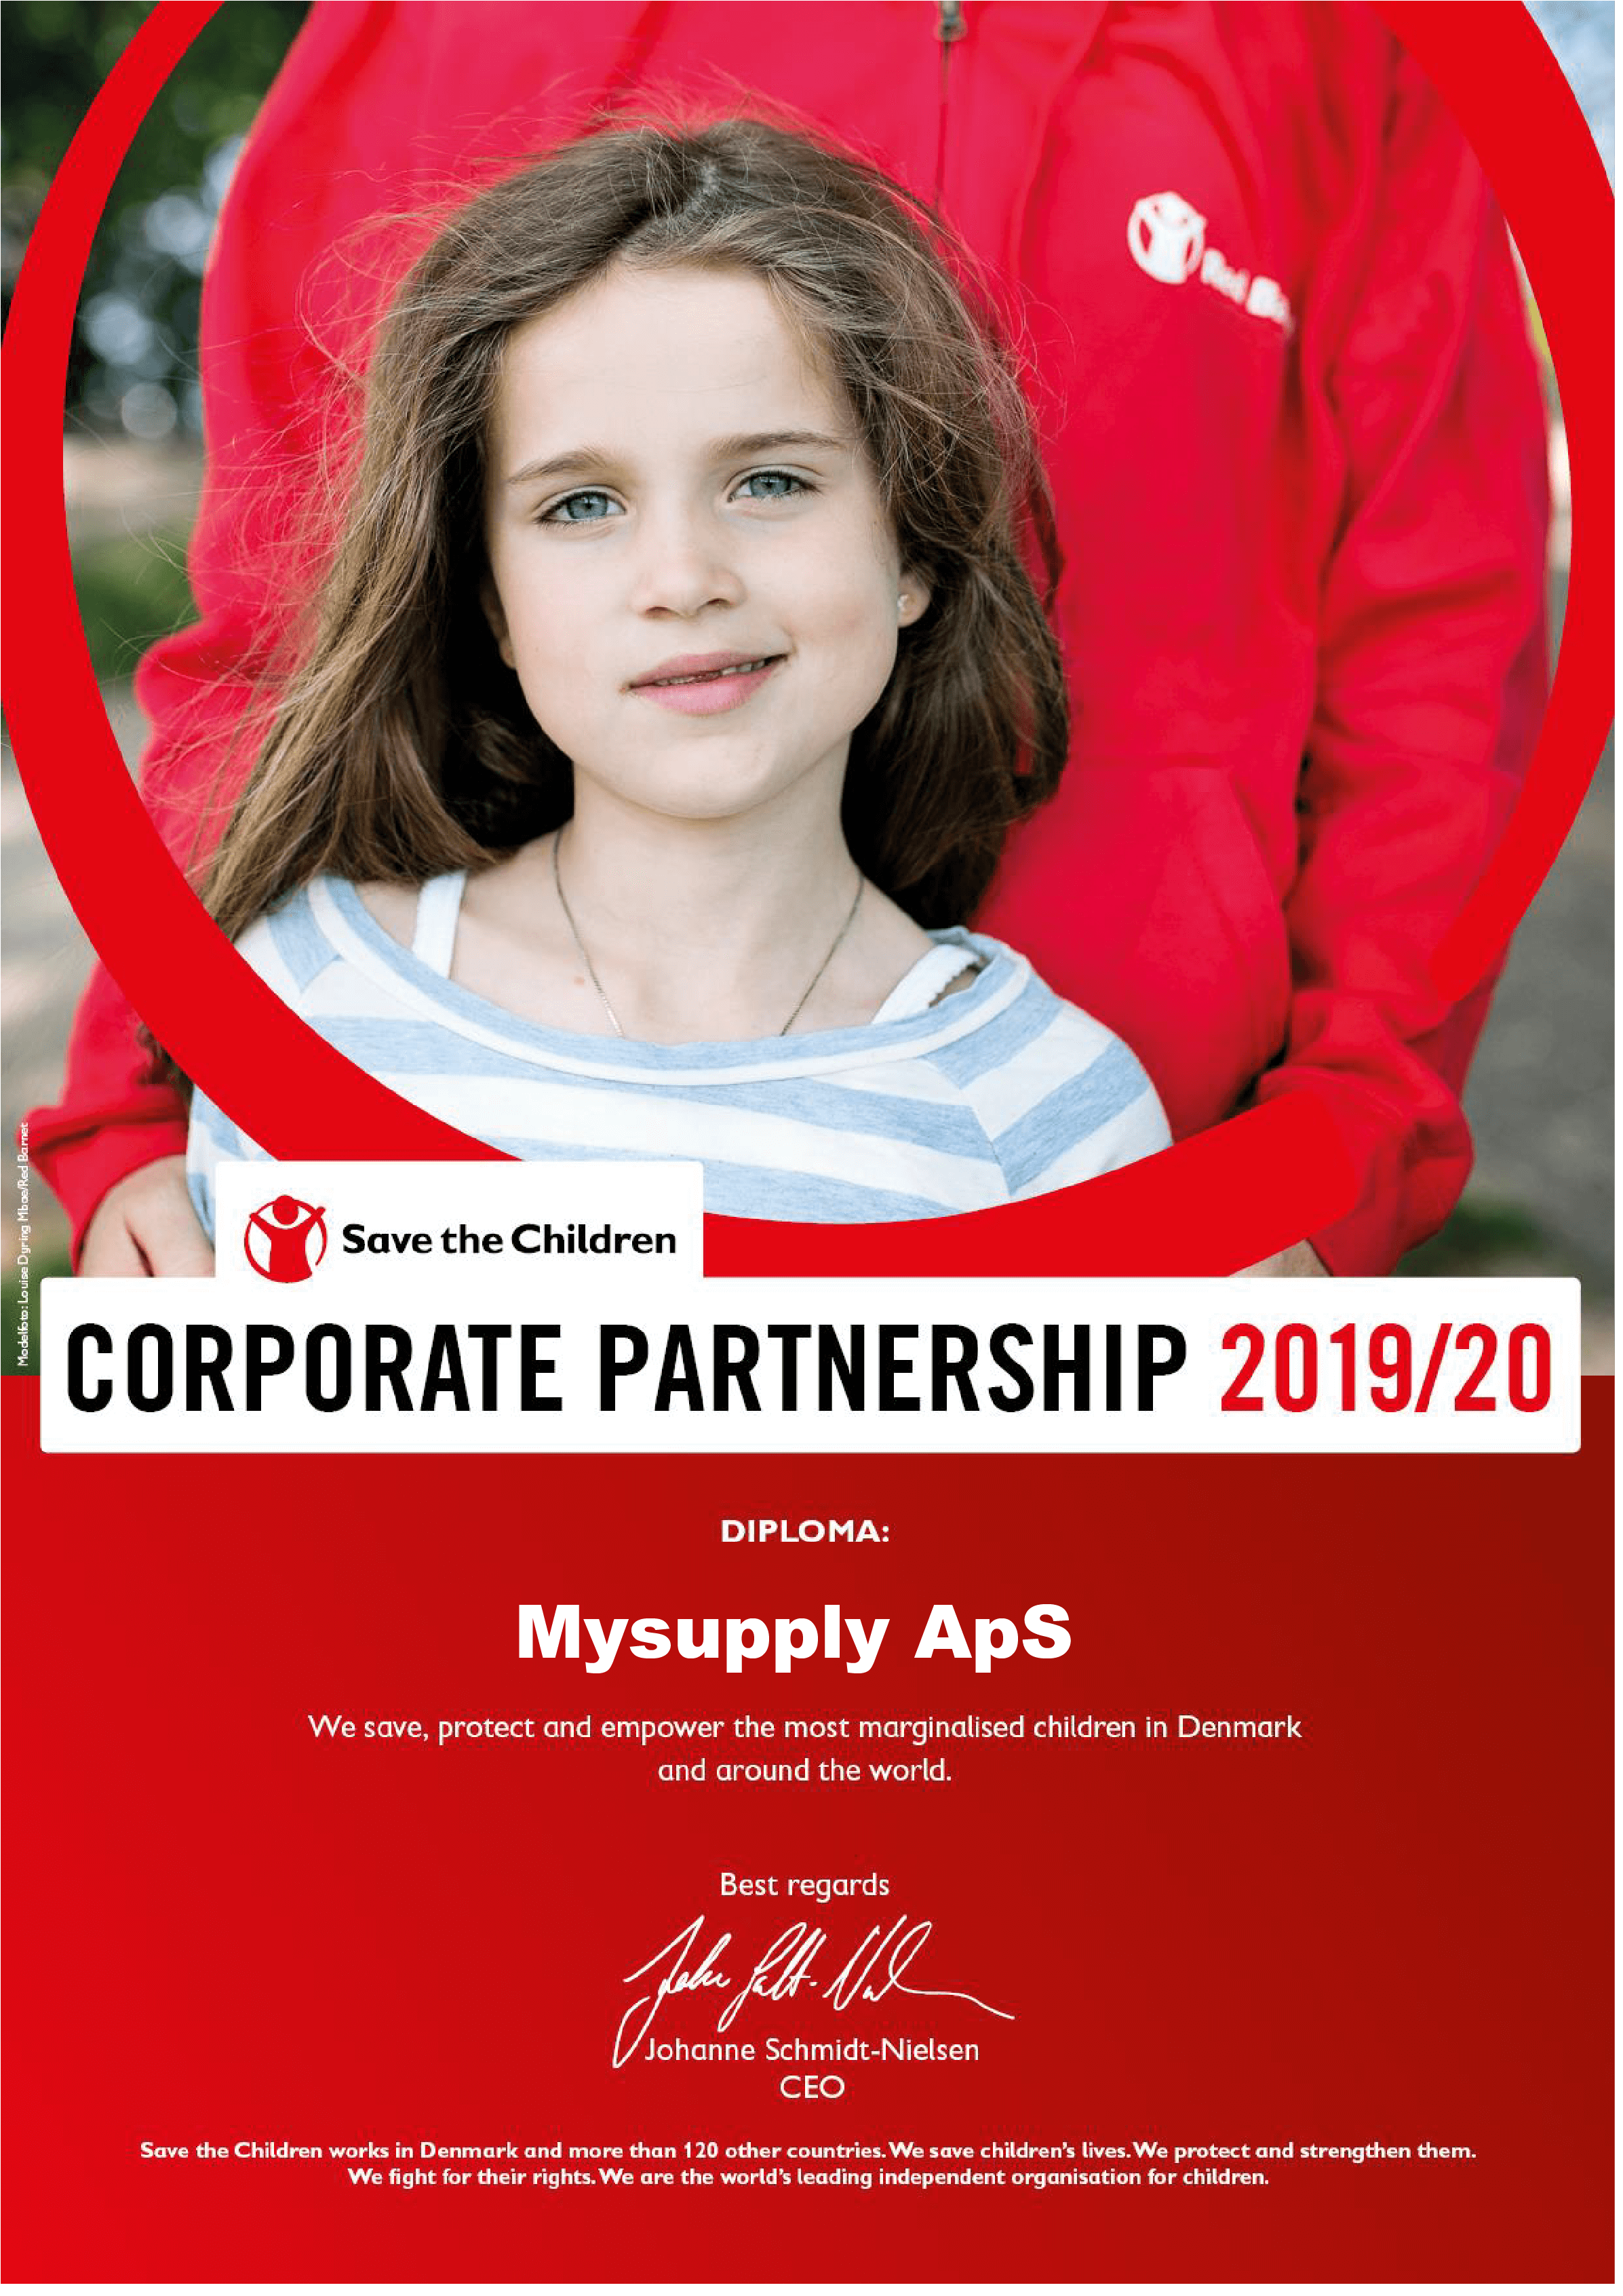 mySupply is Corporate partner for Save the Children